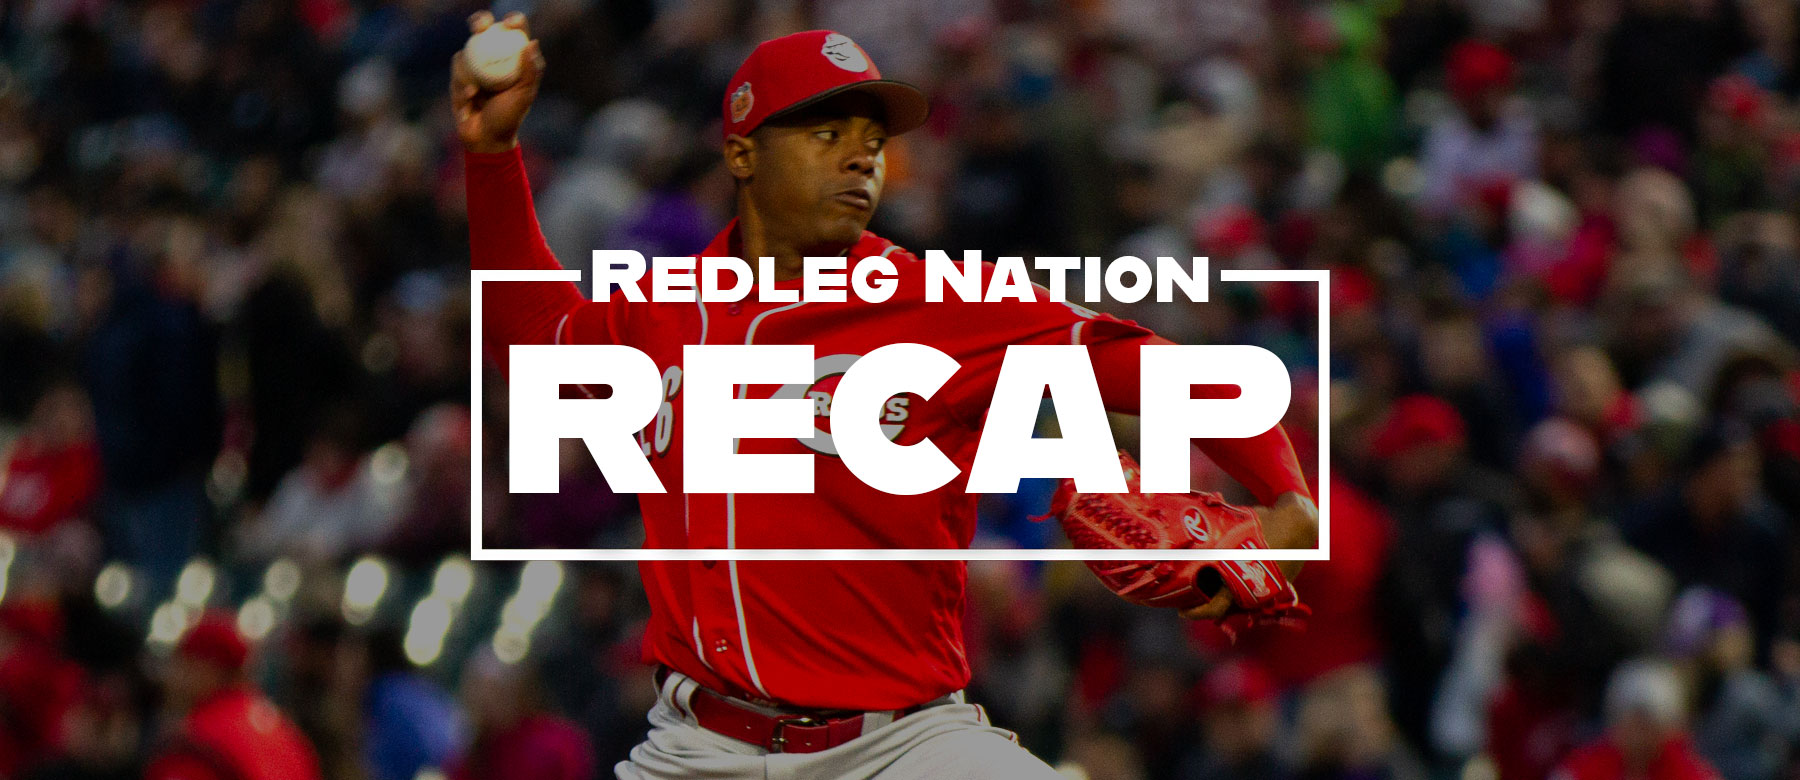 Jose Iglesias puts the Reds up, Raisel Iglesias closes out win over Cubs - Redleg Nation